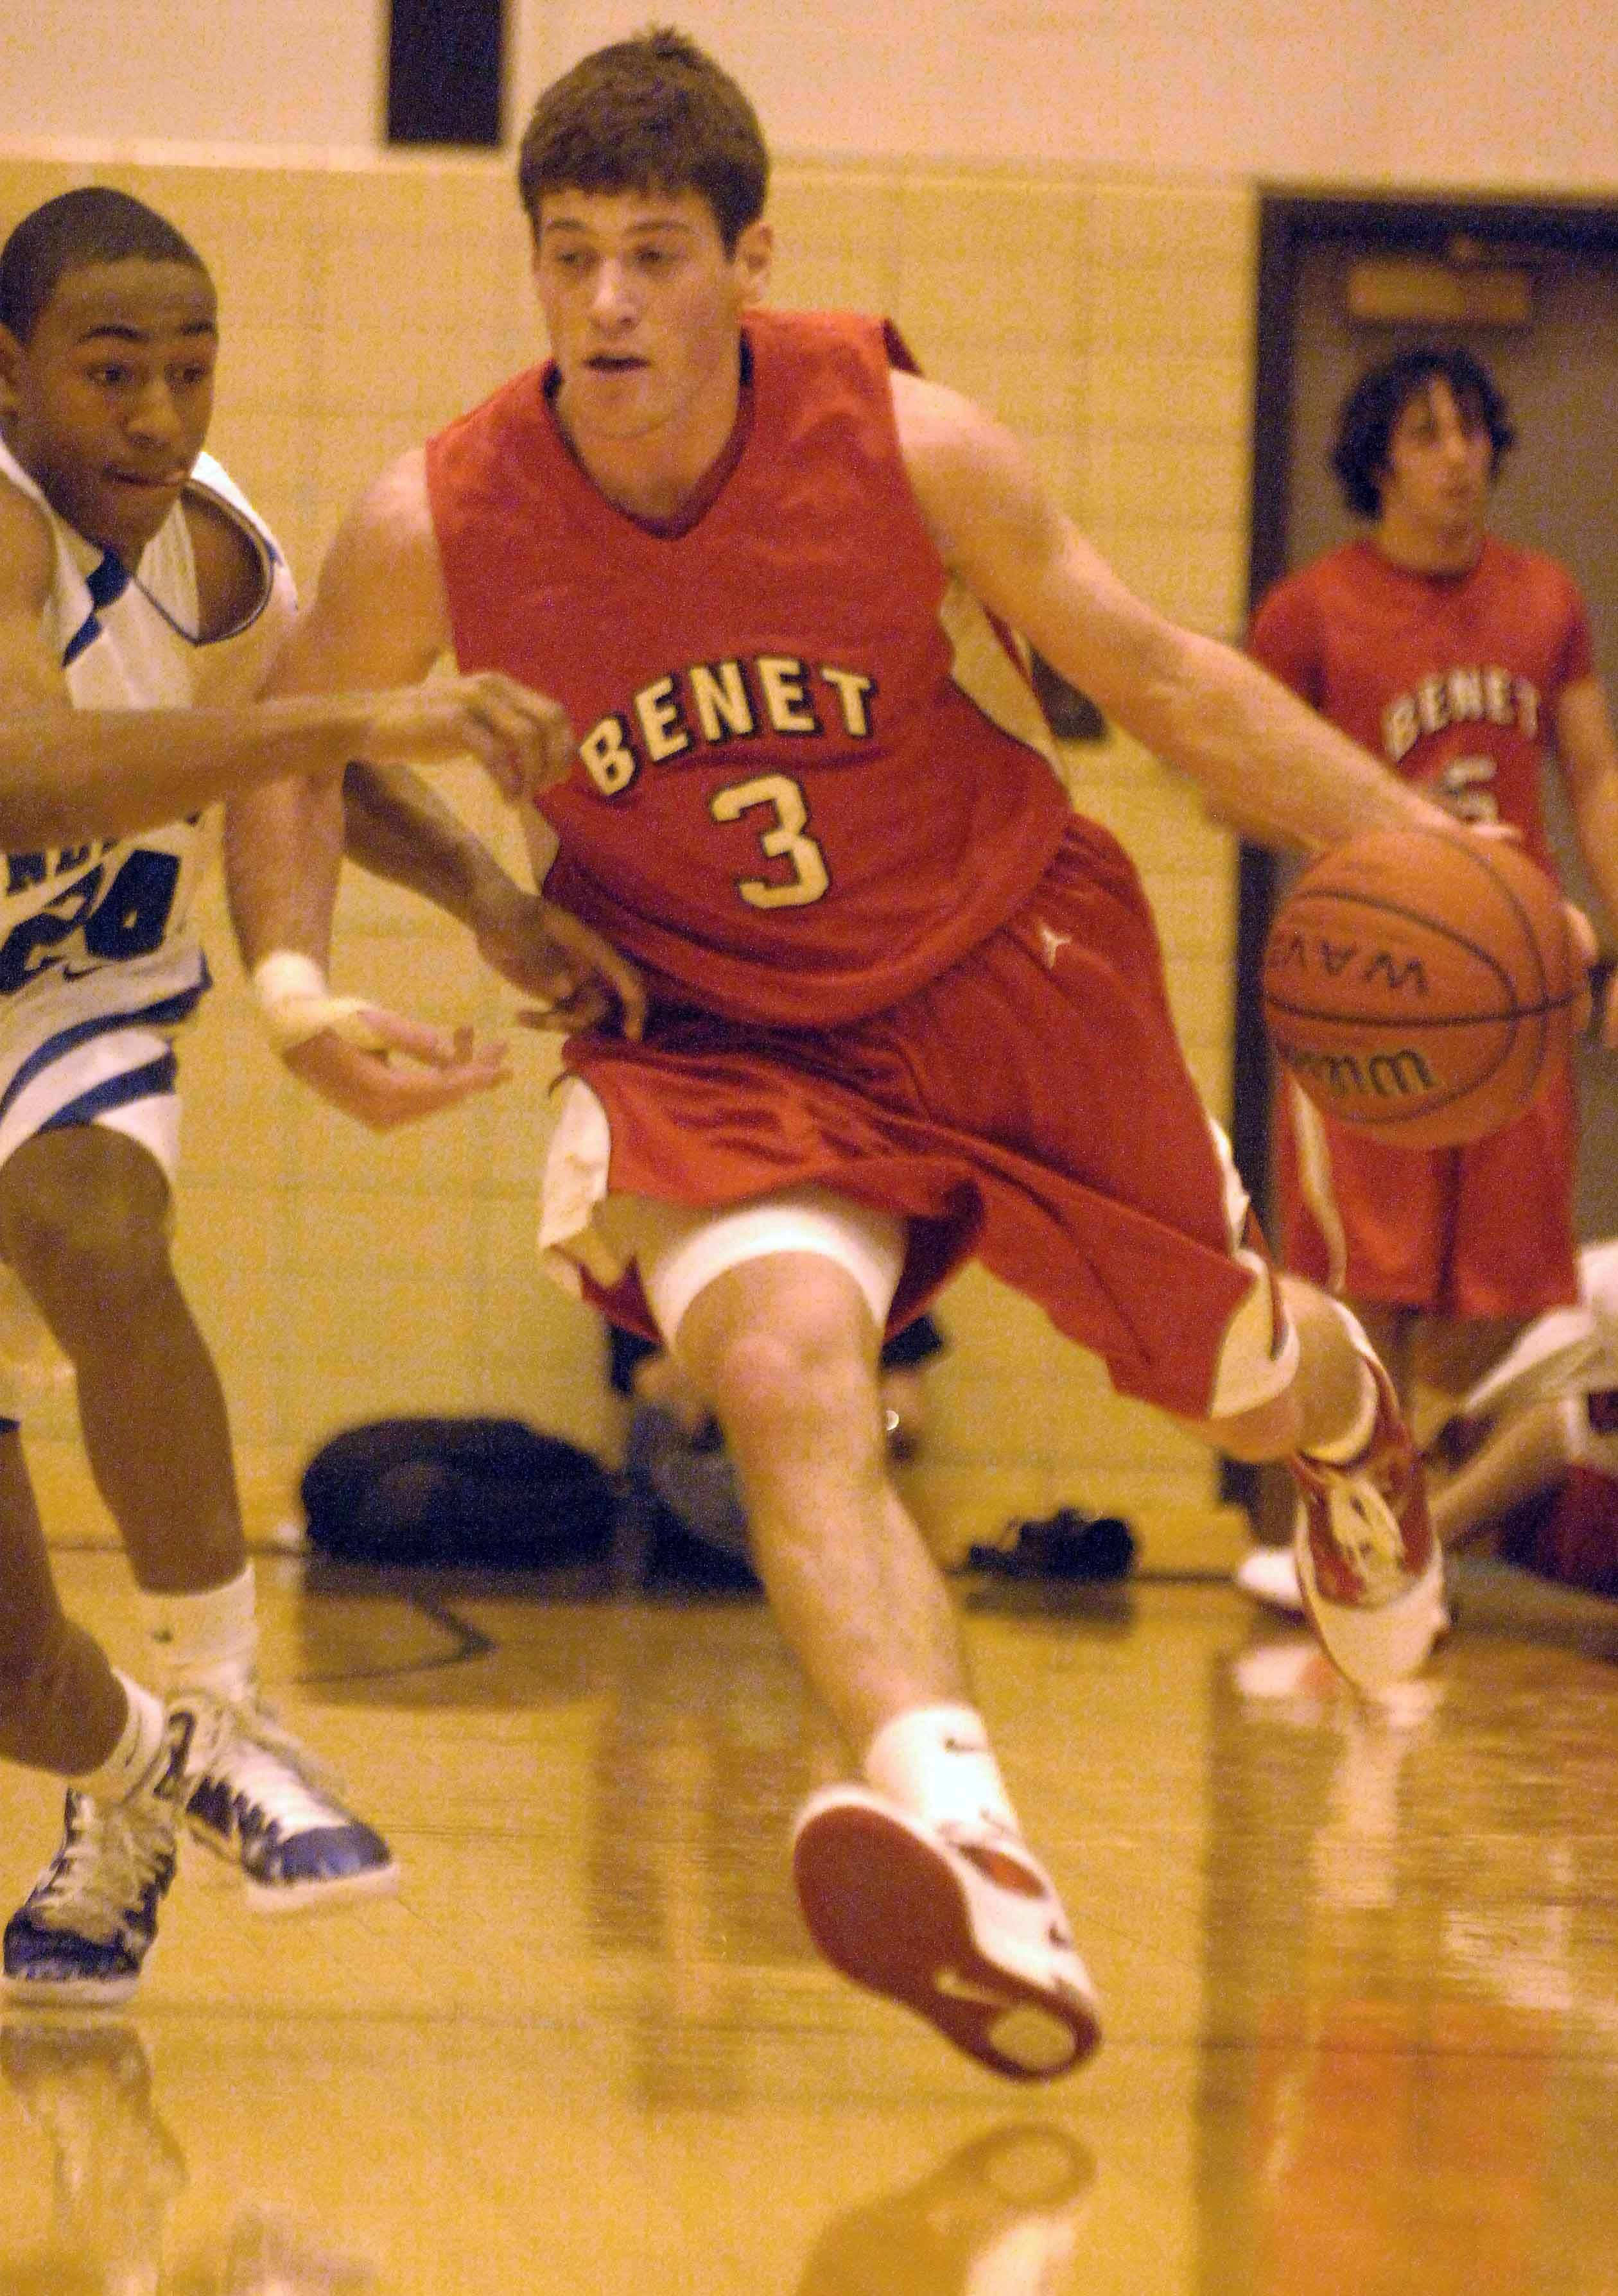 Dave Sobolewski of Benet moves the ball during the Benet vs. New Trier boys game at Proviso West Tuesday.